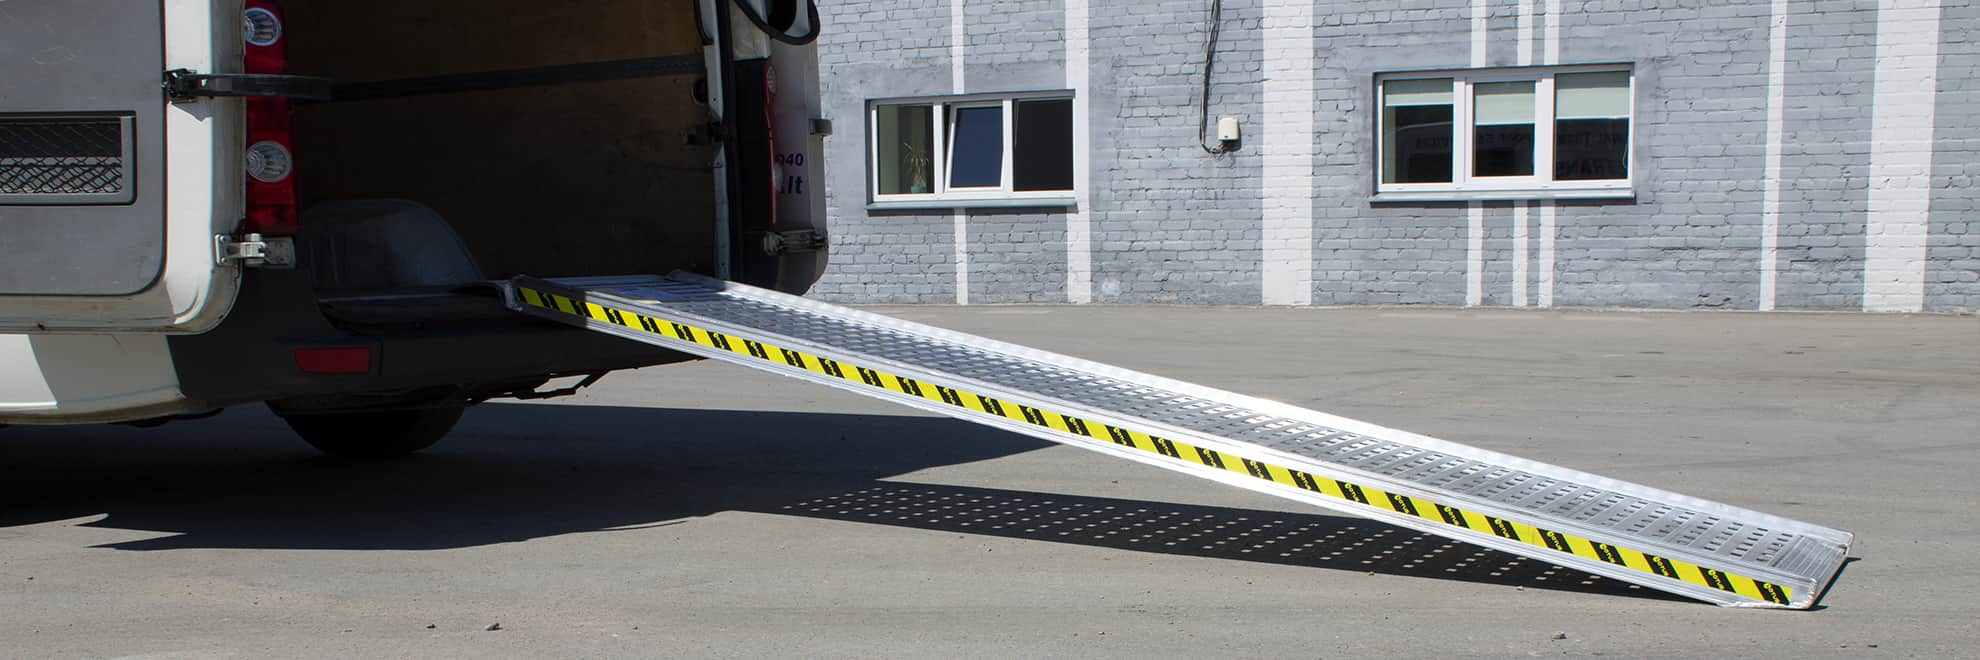 Mobile Van & Trucks ramps